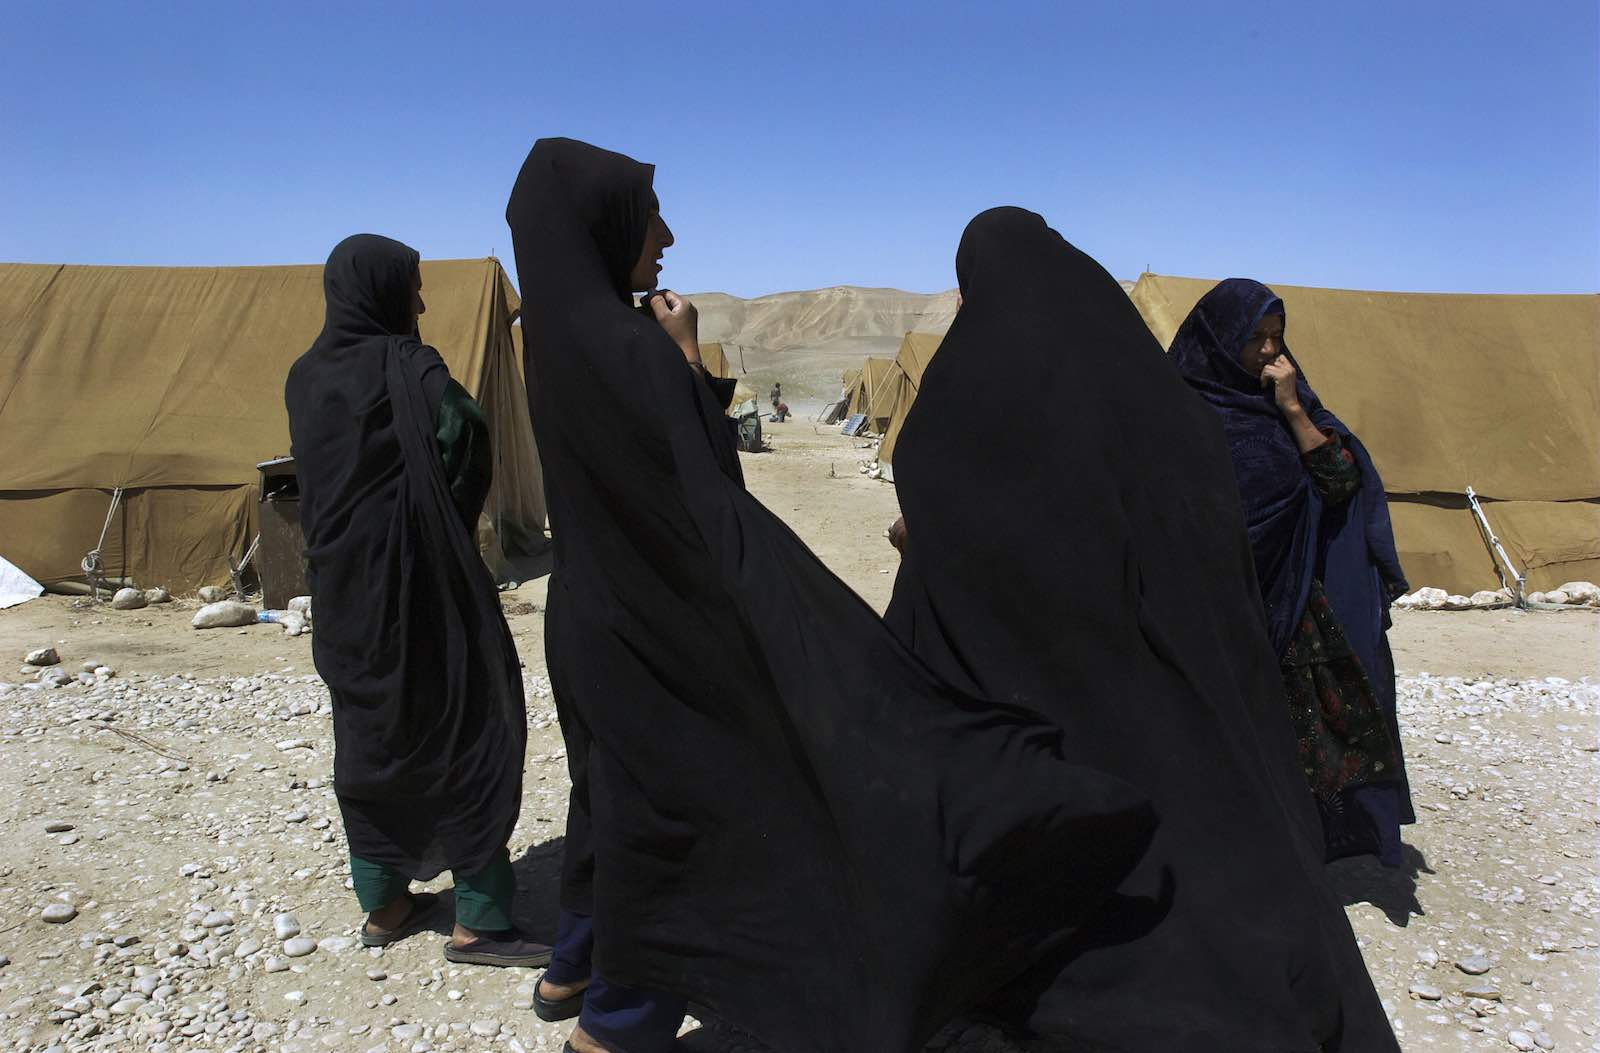 A group of Afghan women, former refugees newly returned from Iran, gathers at a UN returnee camp in western Afghanistan, 2009 (Photo: UN Photo/Flickr)